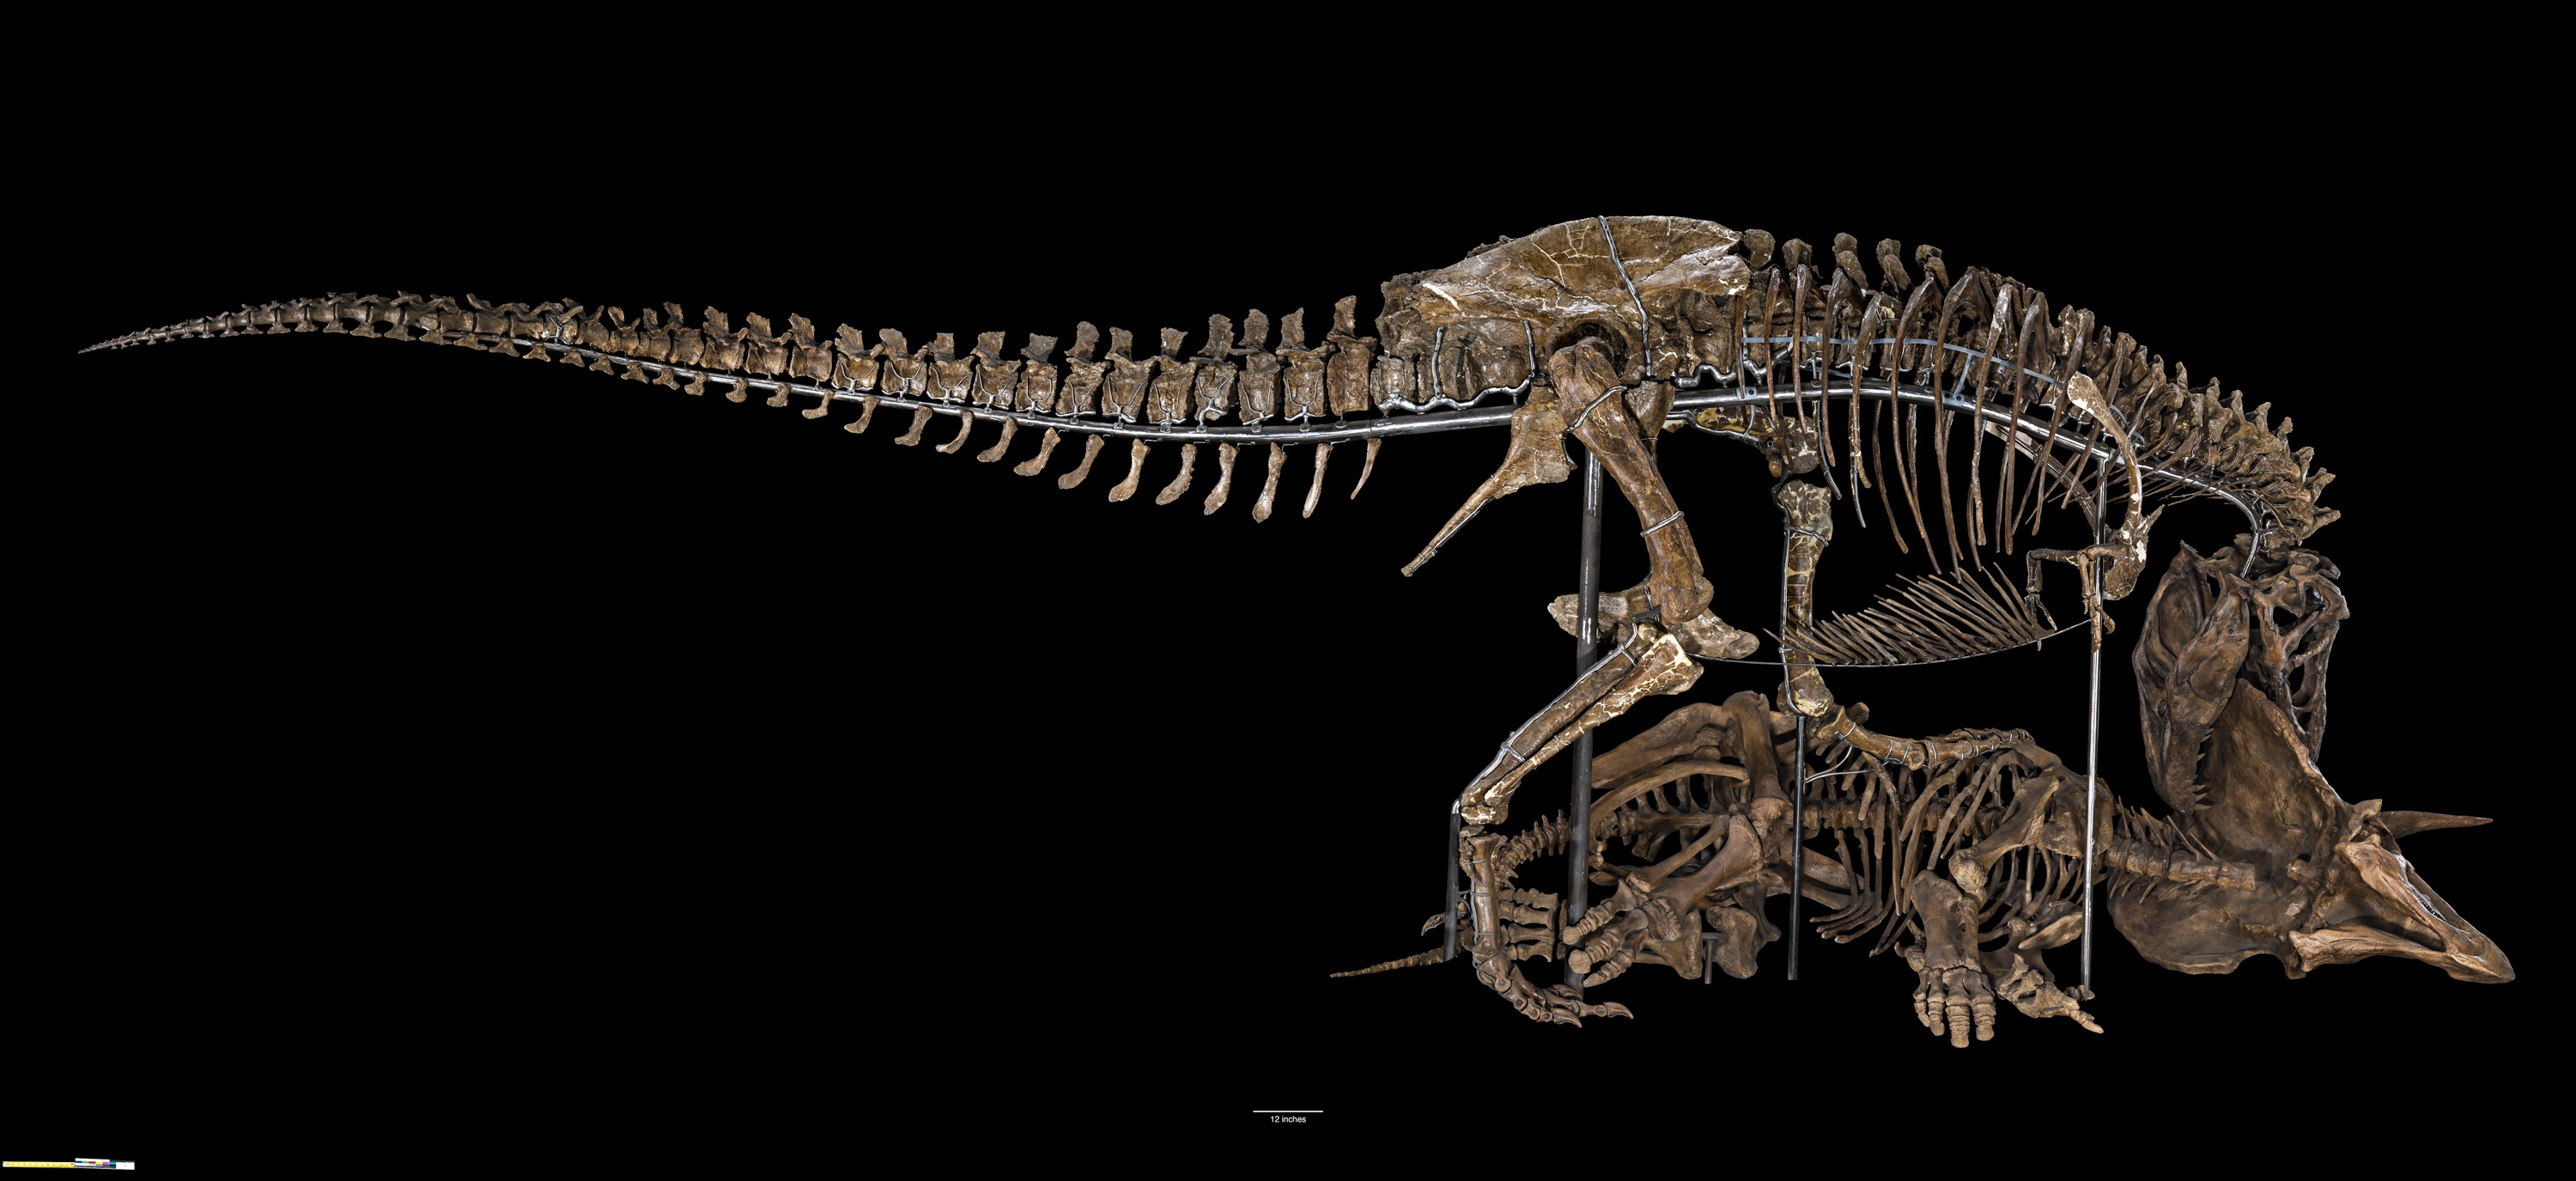 The Smithsonian's National Museum of Natural History will reopen its dinosaur and fossil hall Saturday, June 8.